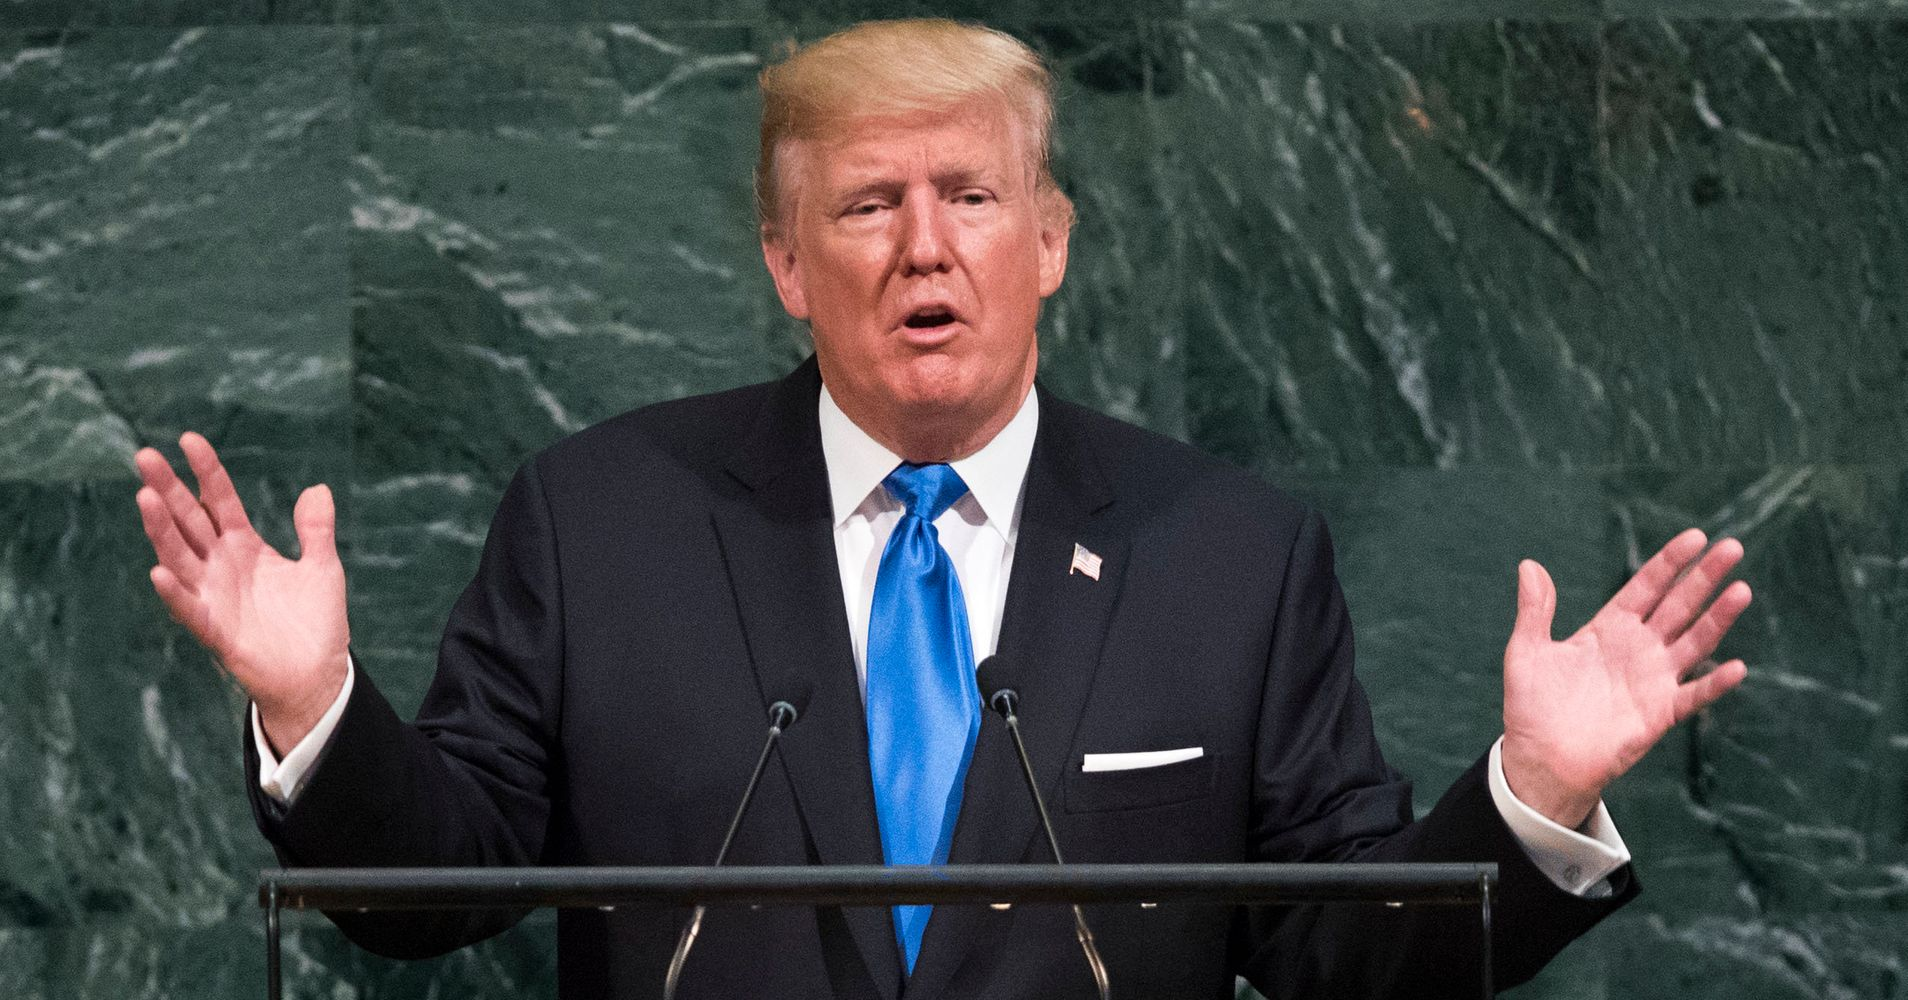 Trumps speech to UN called terrifying and delusional by foreign policy experts The President did not hold back on North Korea and Iran